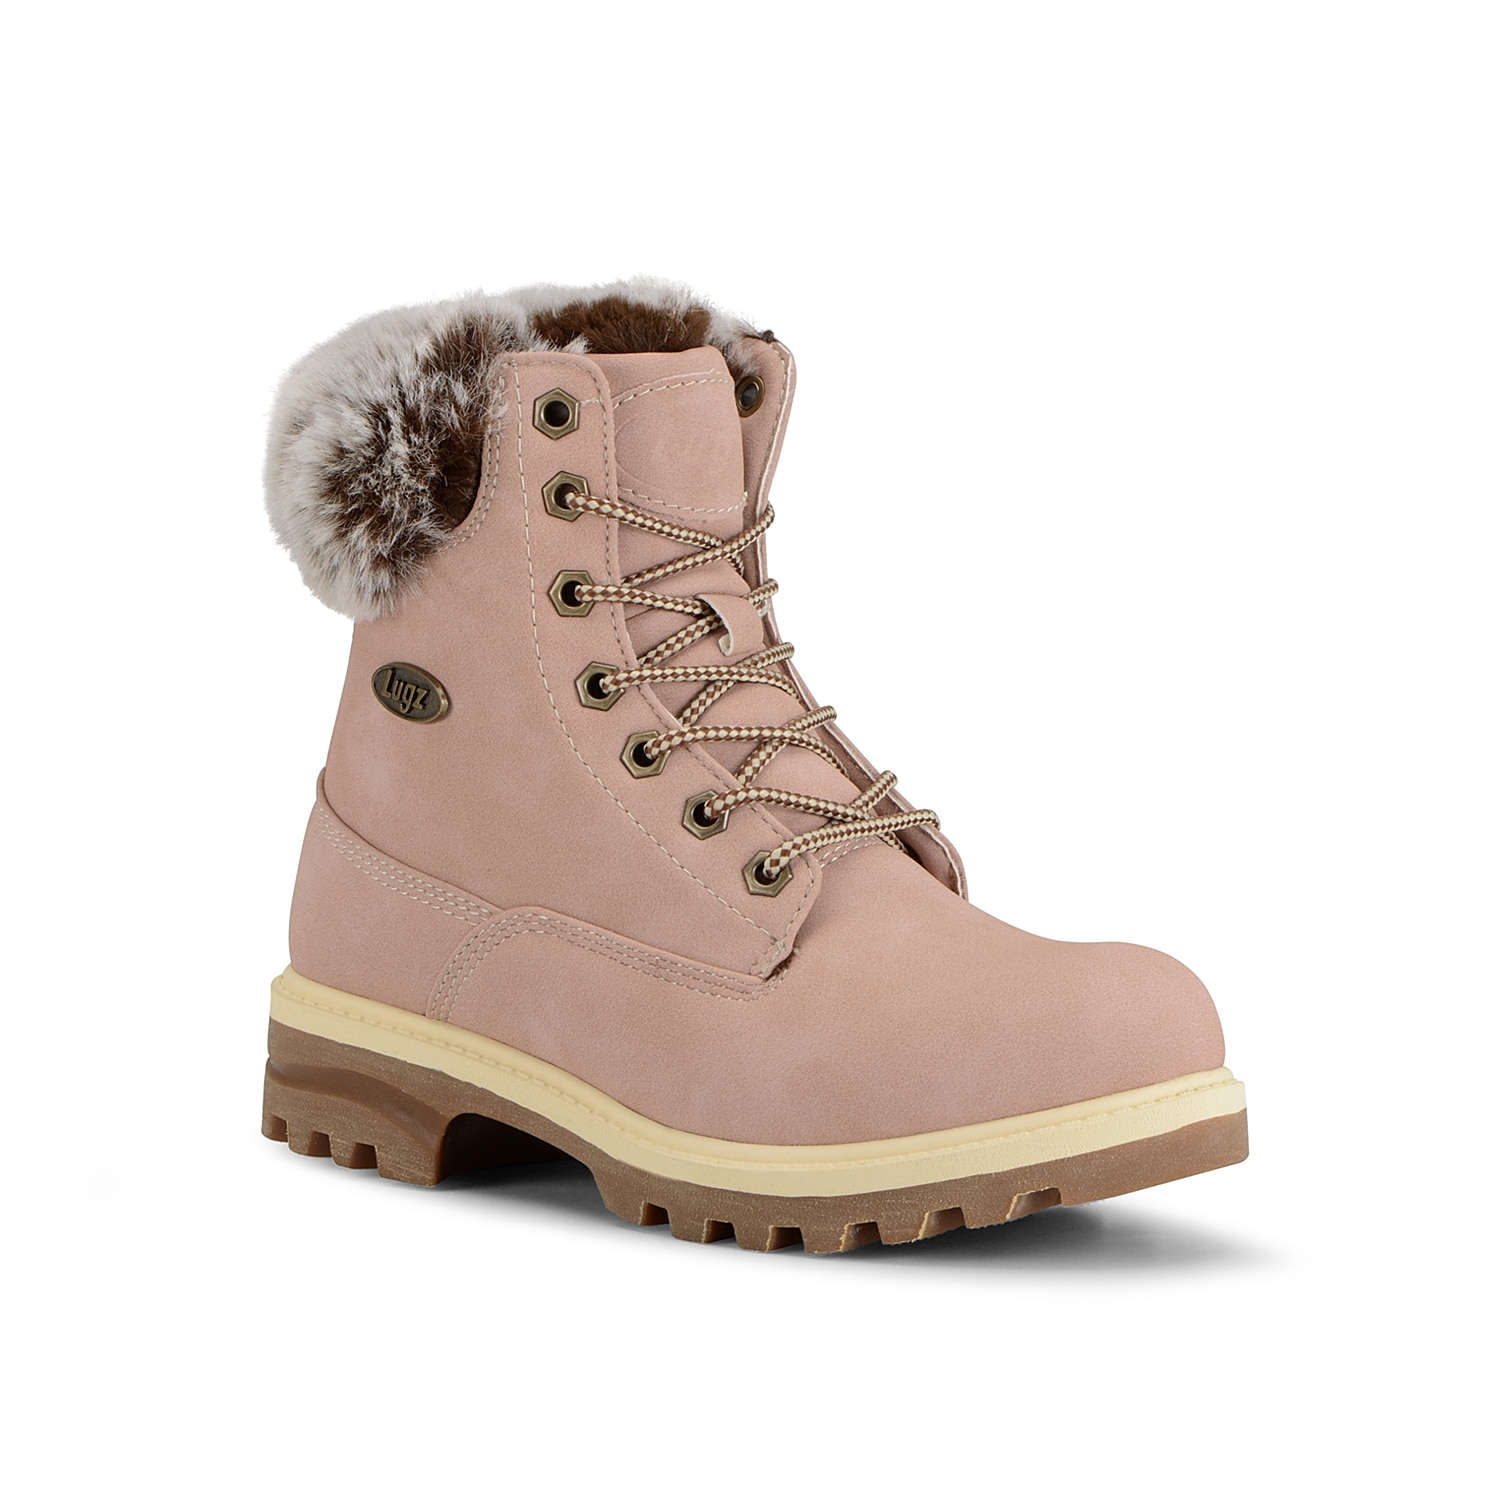 Keep your shoe collection right on trend with the Empire Hi Fur bootie from Lugz. This lace-up features a water-resistant finish and a slip-resisant rubber sole that you can pair with anything from jeans to sweater dresses! Click here for Boot Measuring Guide.